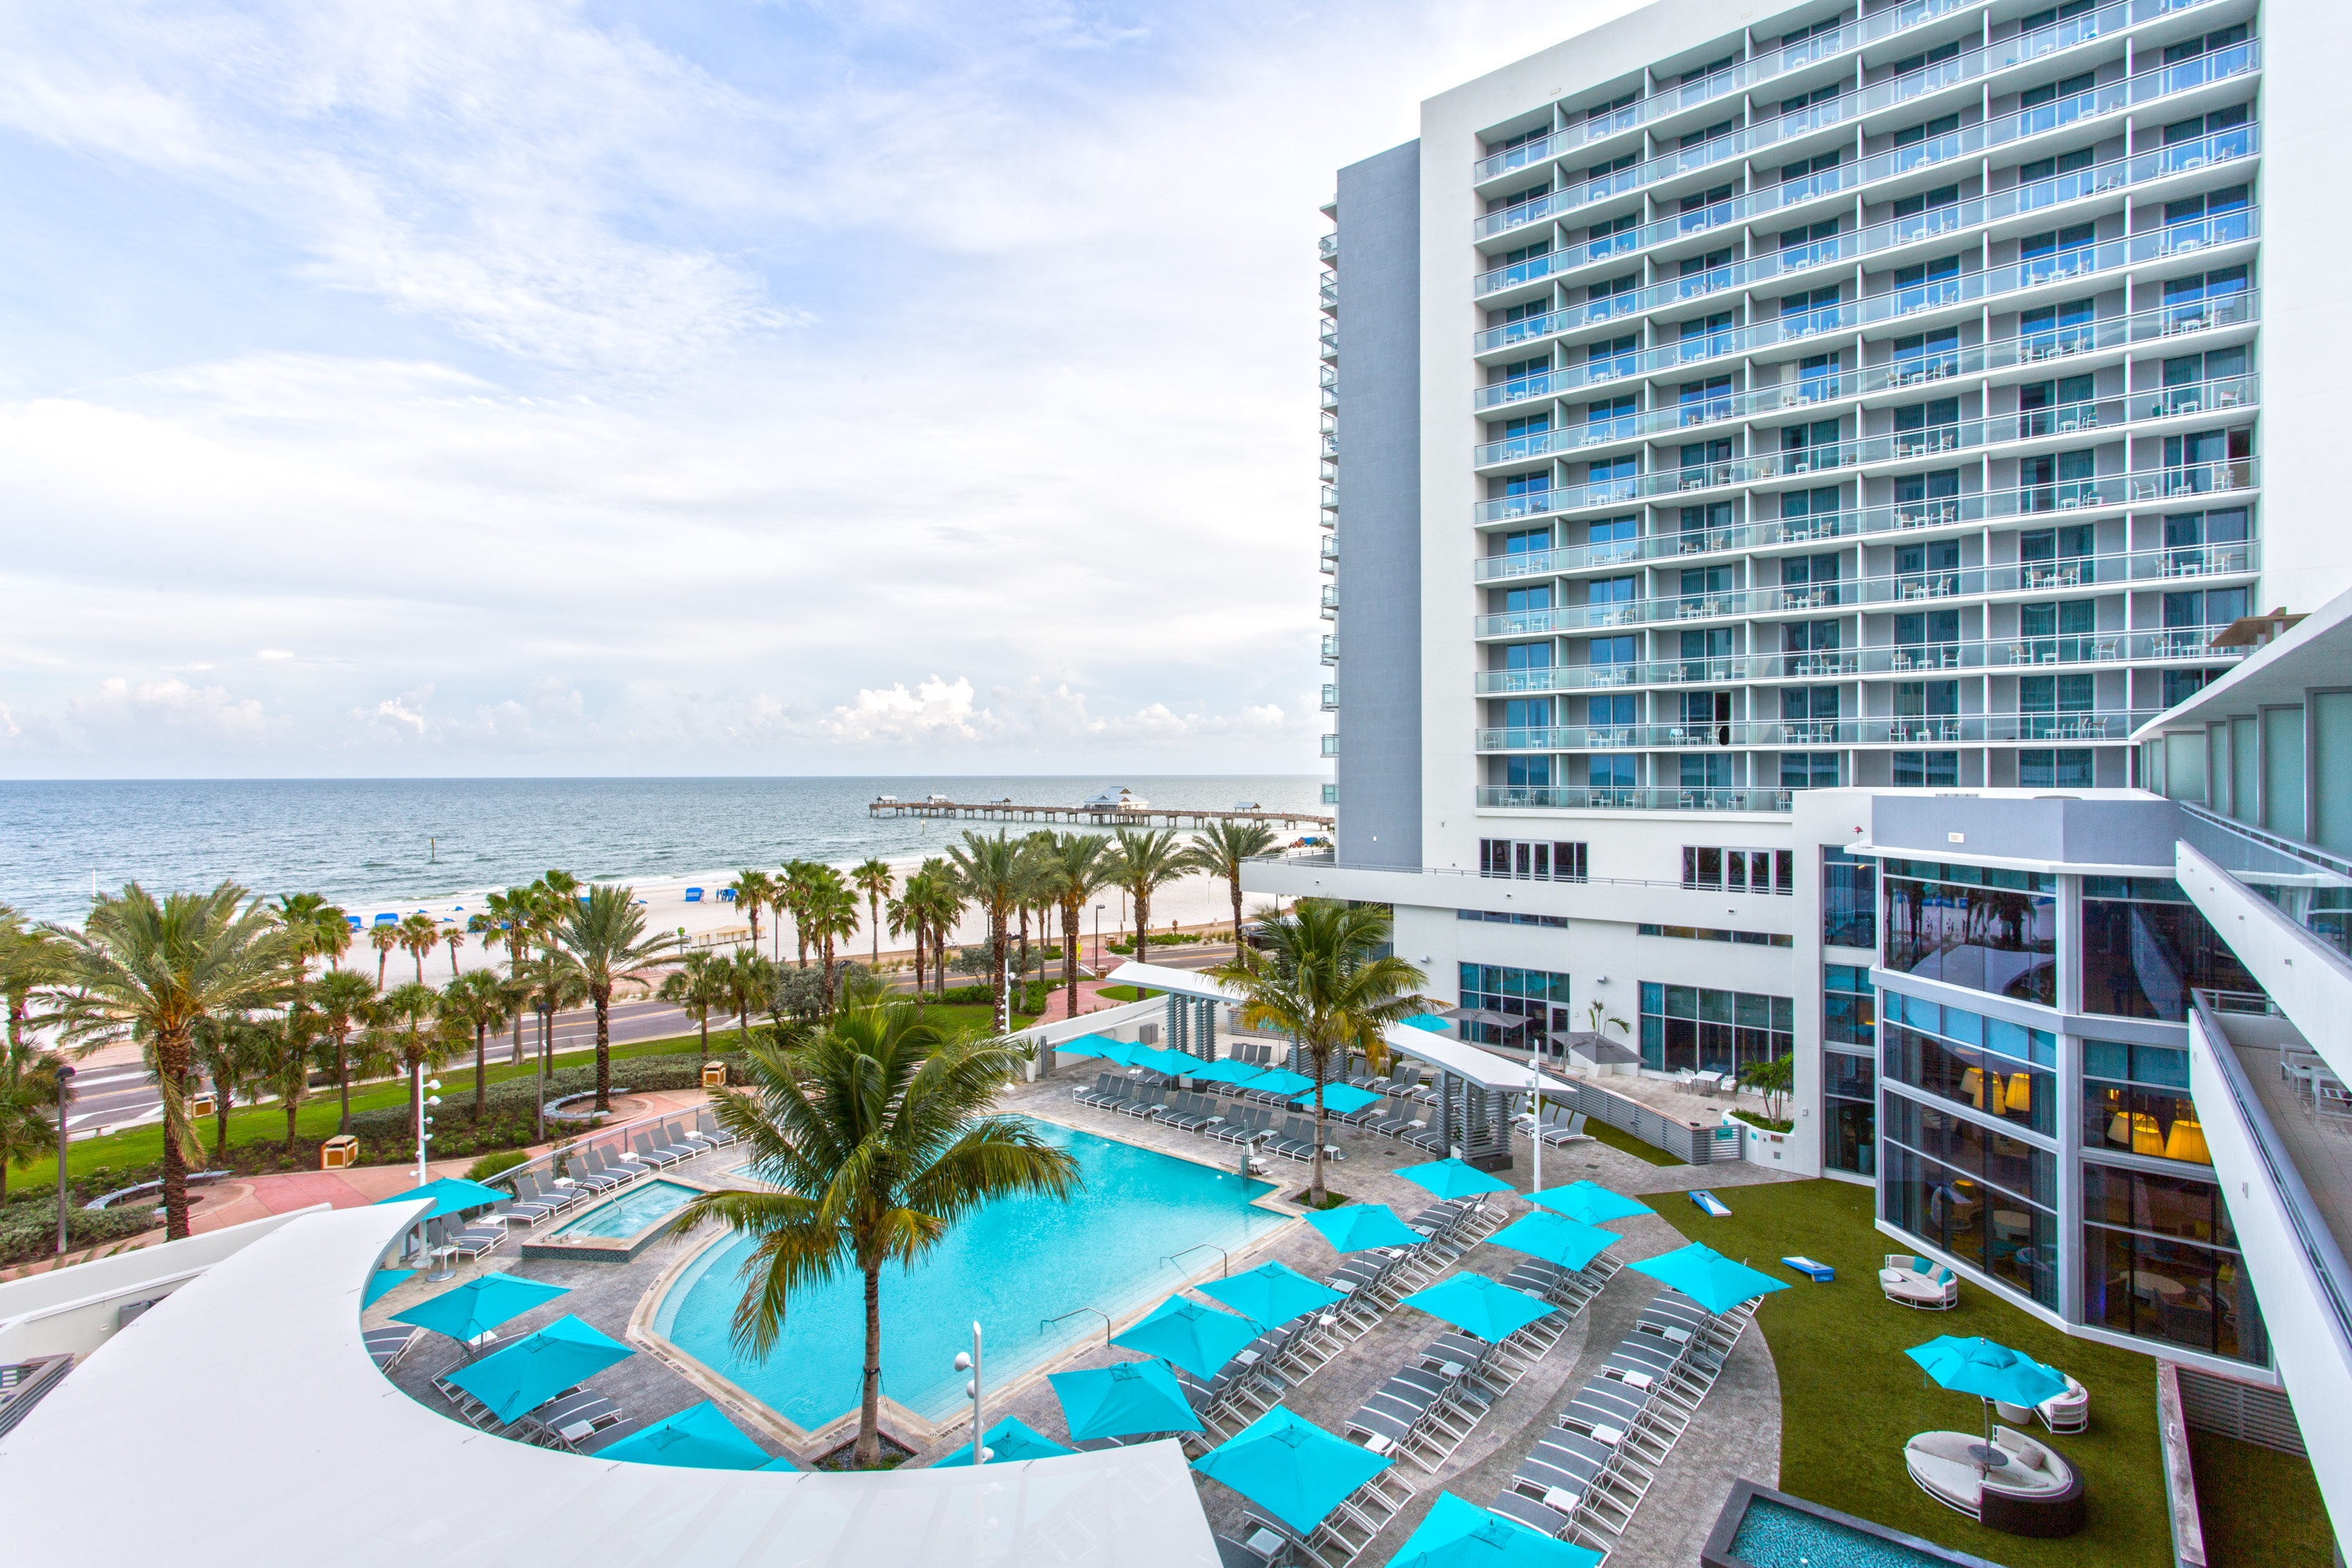 Apartment Clearwater Beach Resort 2 Bedrooms 2 bathrooms photo 18333423